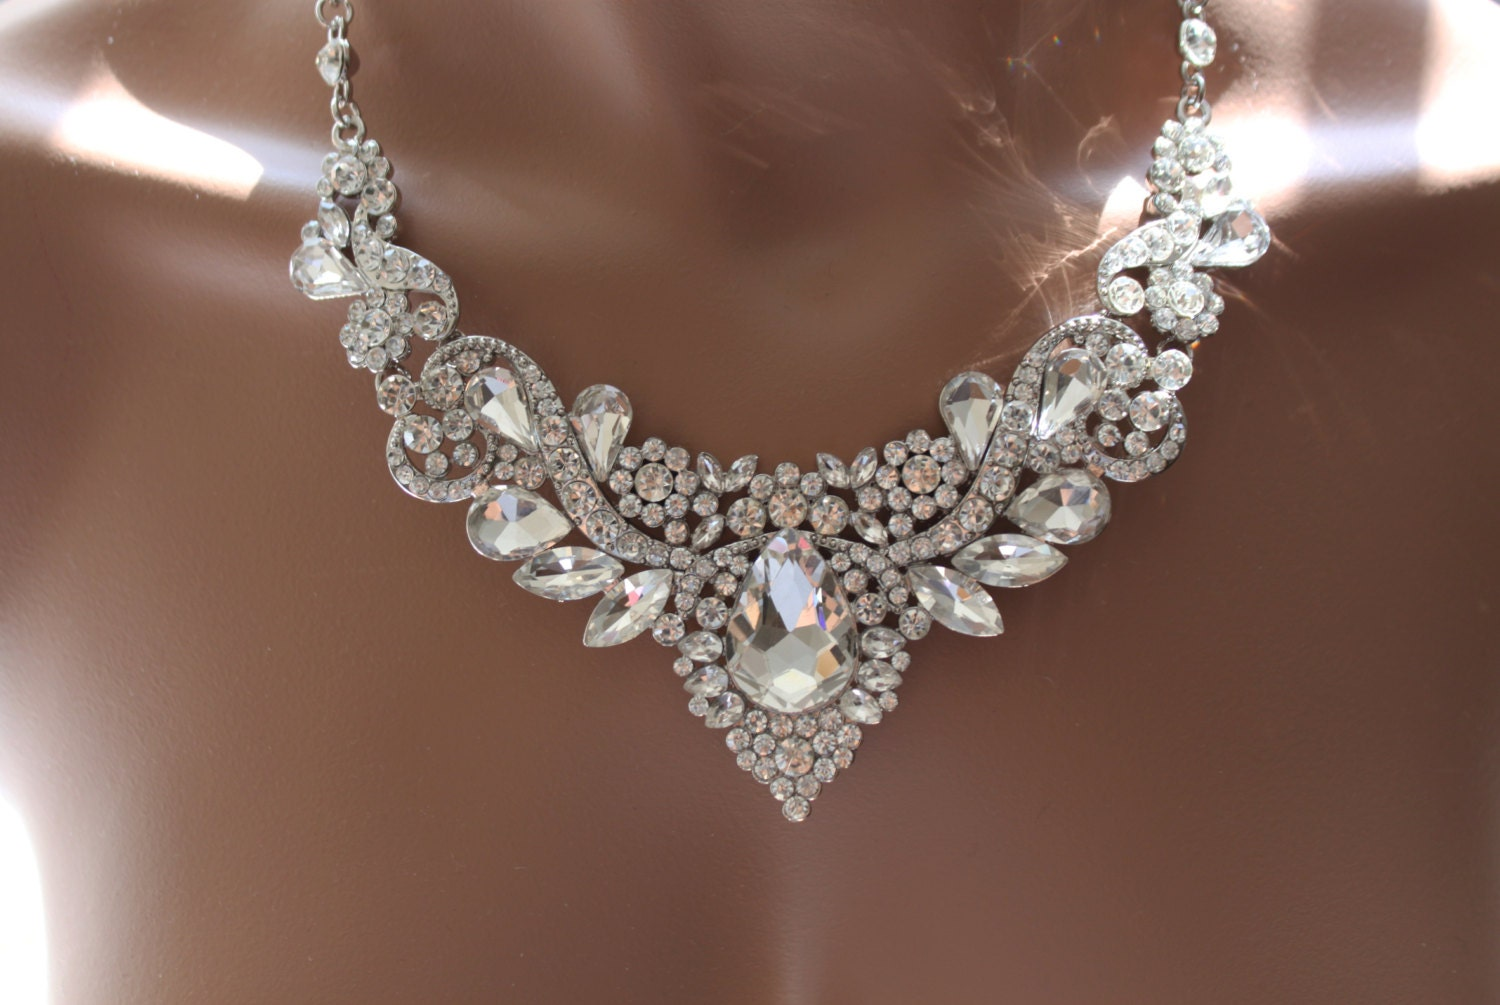 Bridal Jewelry Set Crystal Deco Nouveau Style Necklace With